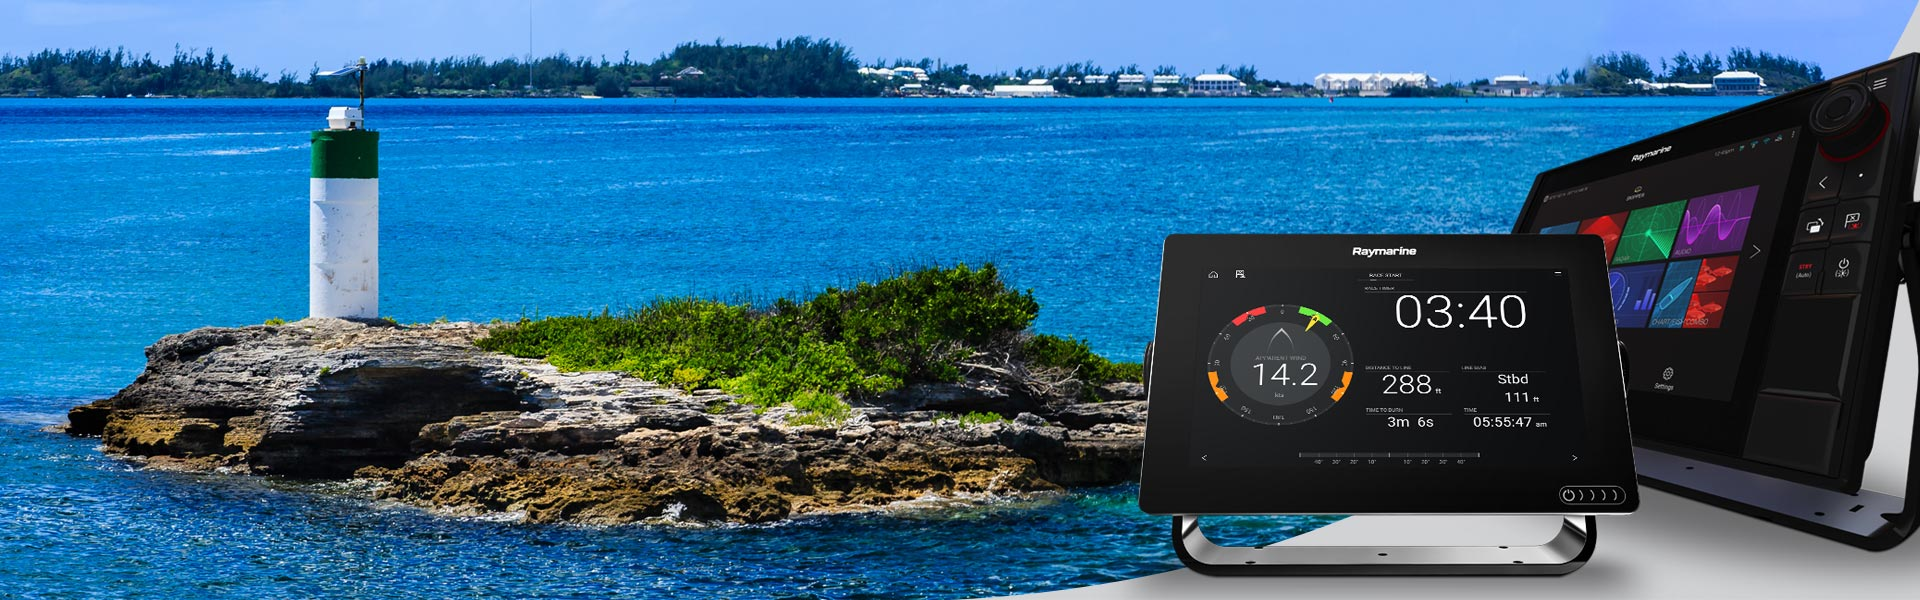 New LightHouse Bermuda v3.10 | Raymarine - A Brand by FLIR